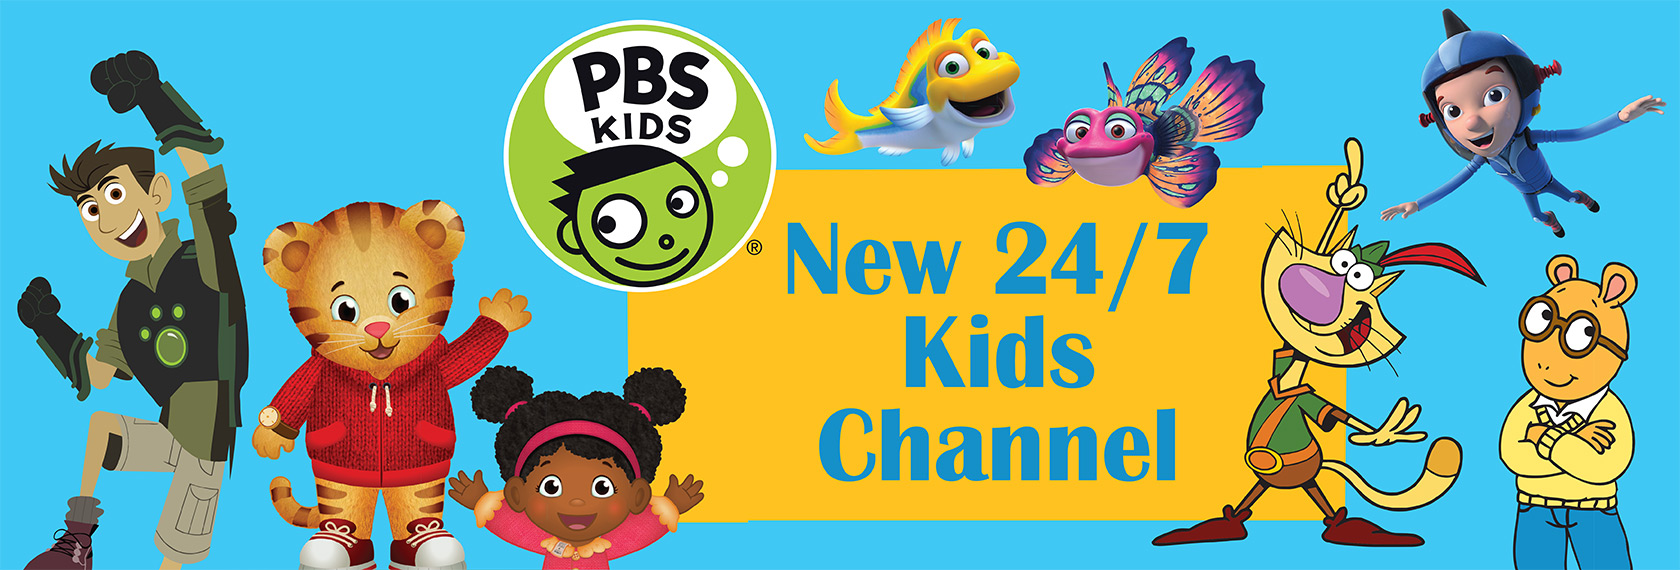 PBS Kids Character